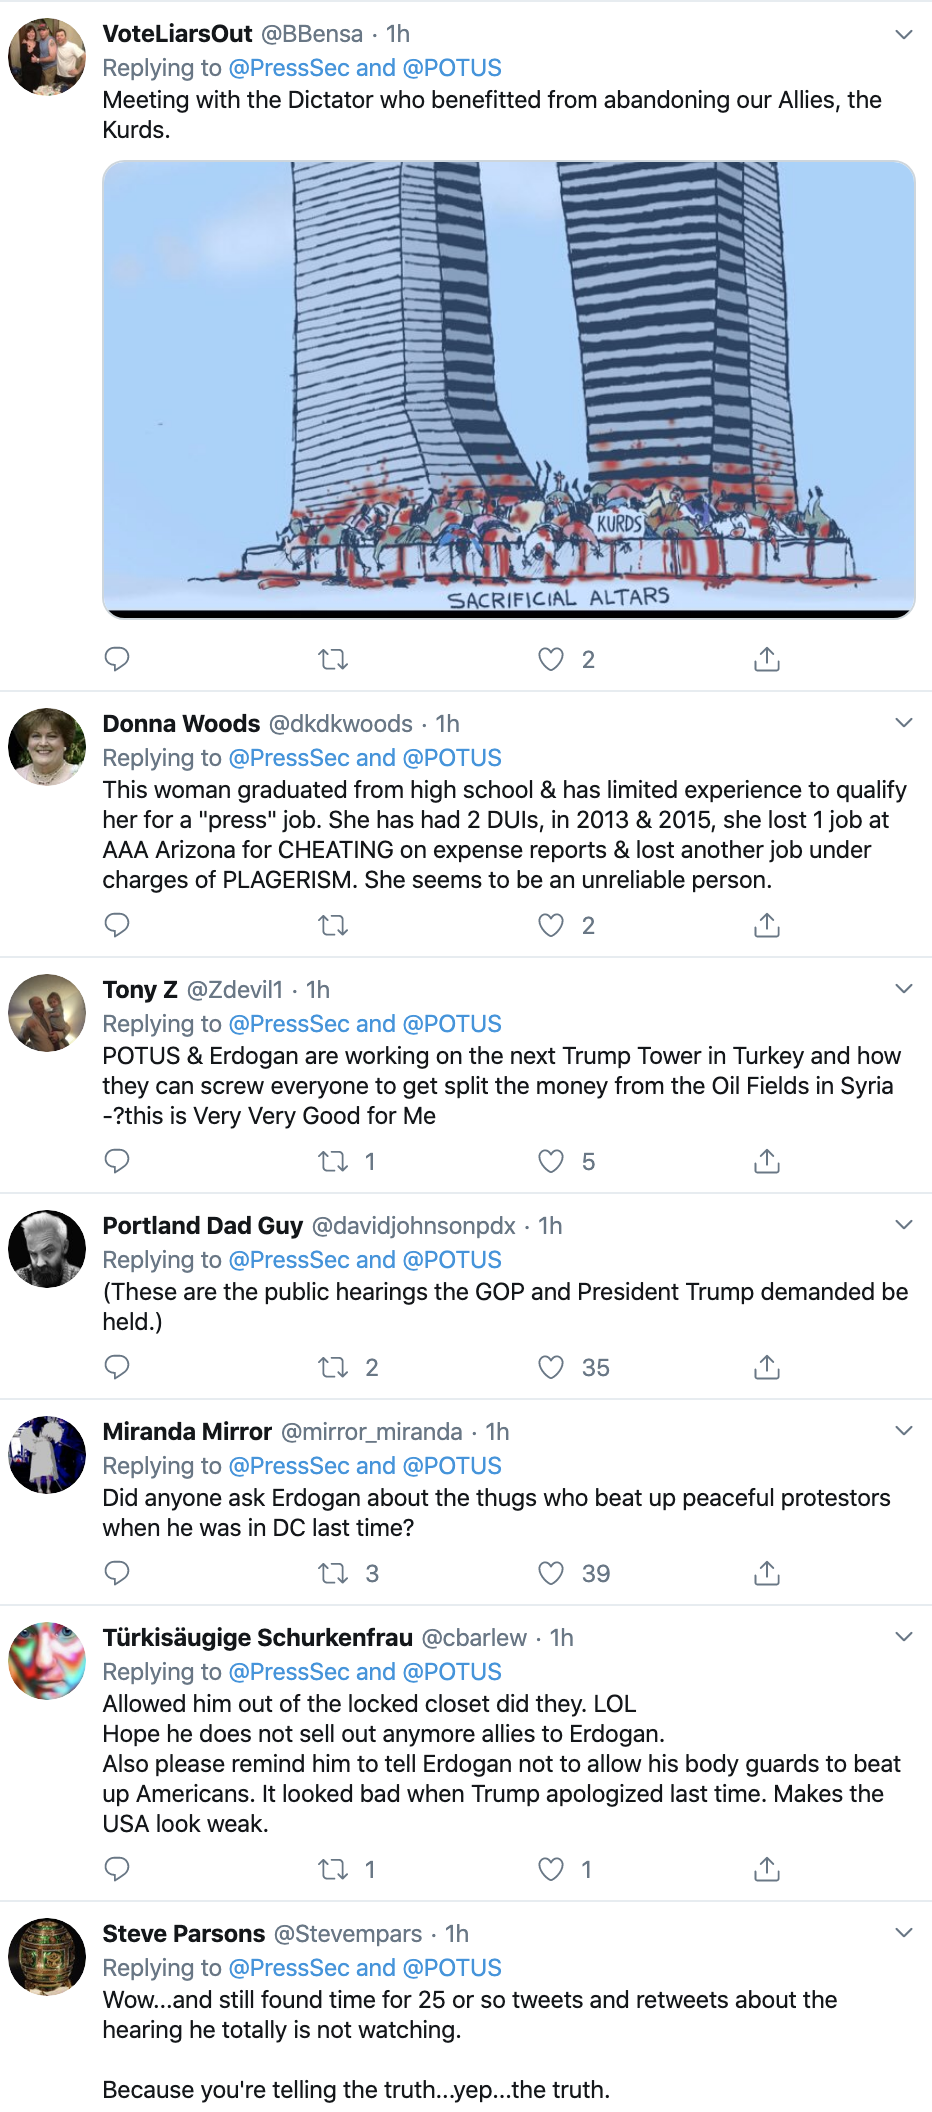 Screen-Shot-2019-11-13-at-3.24.17-PM Trump Flips Out During WH Meeting With Turkish Leader Corruption Crime Donald Trump Election 2020 Featured Foreign Policy Impeachment Investigation Military Politics Russia Terrorism Top Stories Videos War